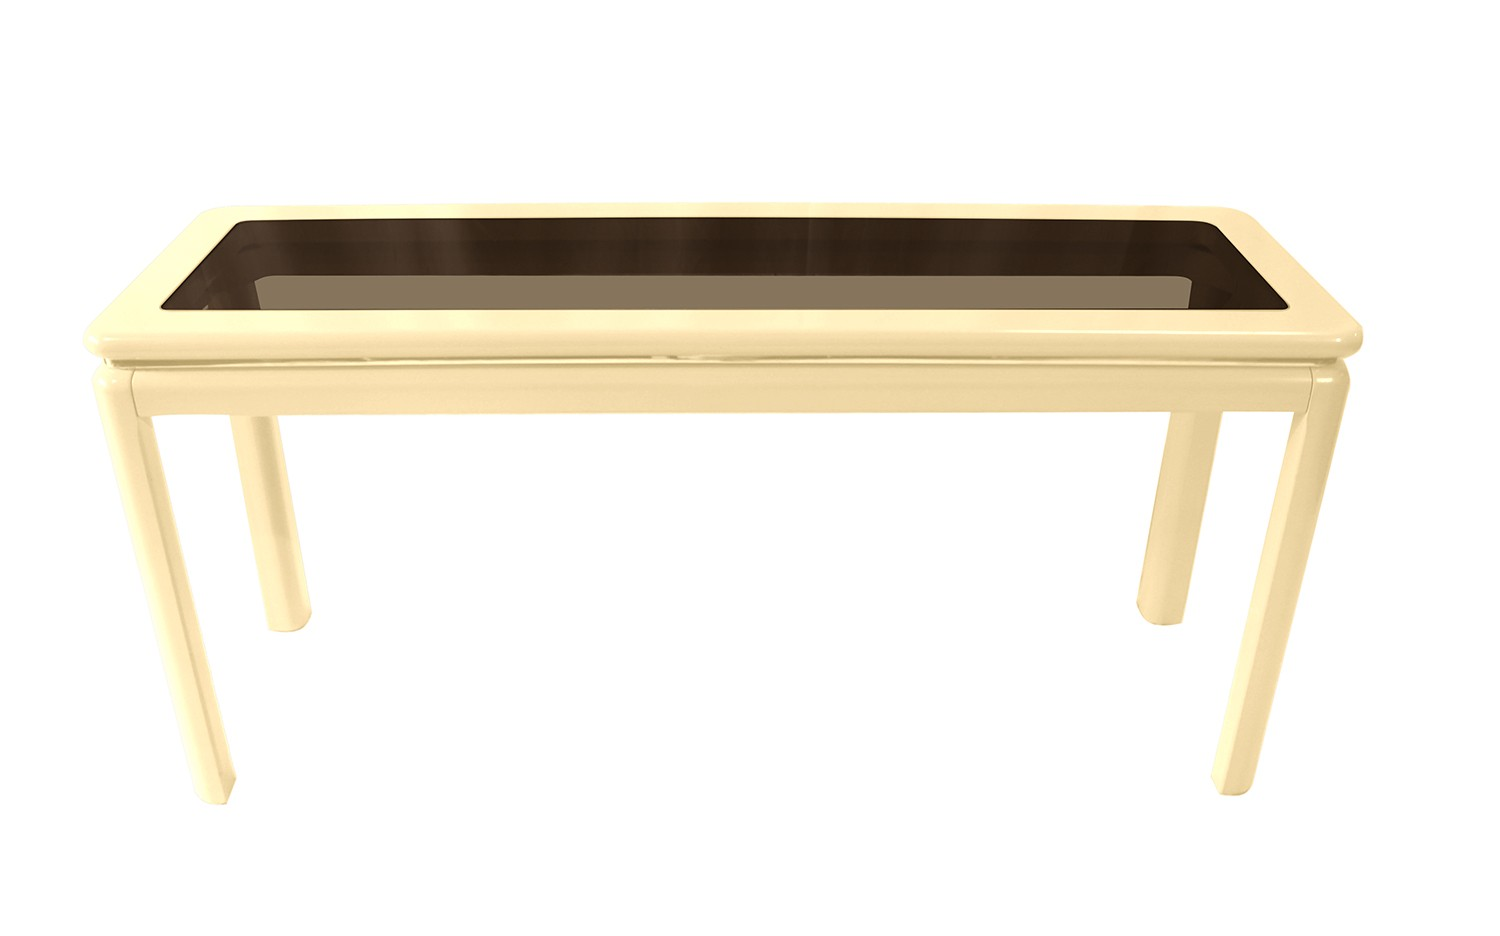 Laquered furniture Diy Reindeer Antiques Mid Century Modern Lacquered Console Table Lane Furniture